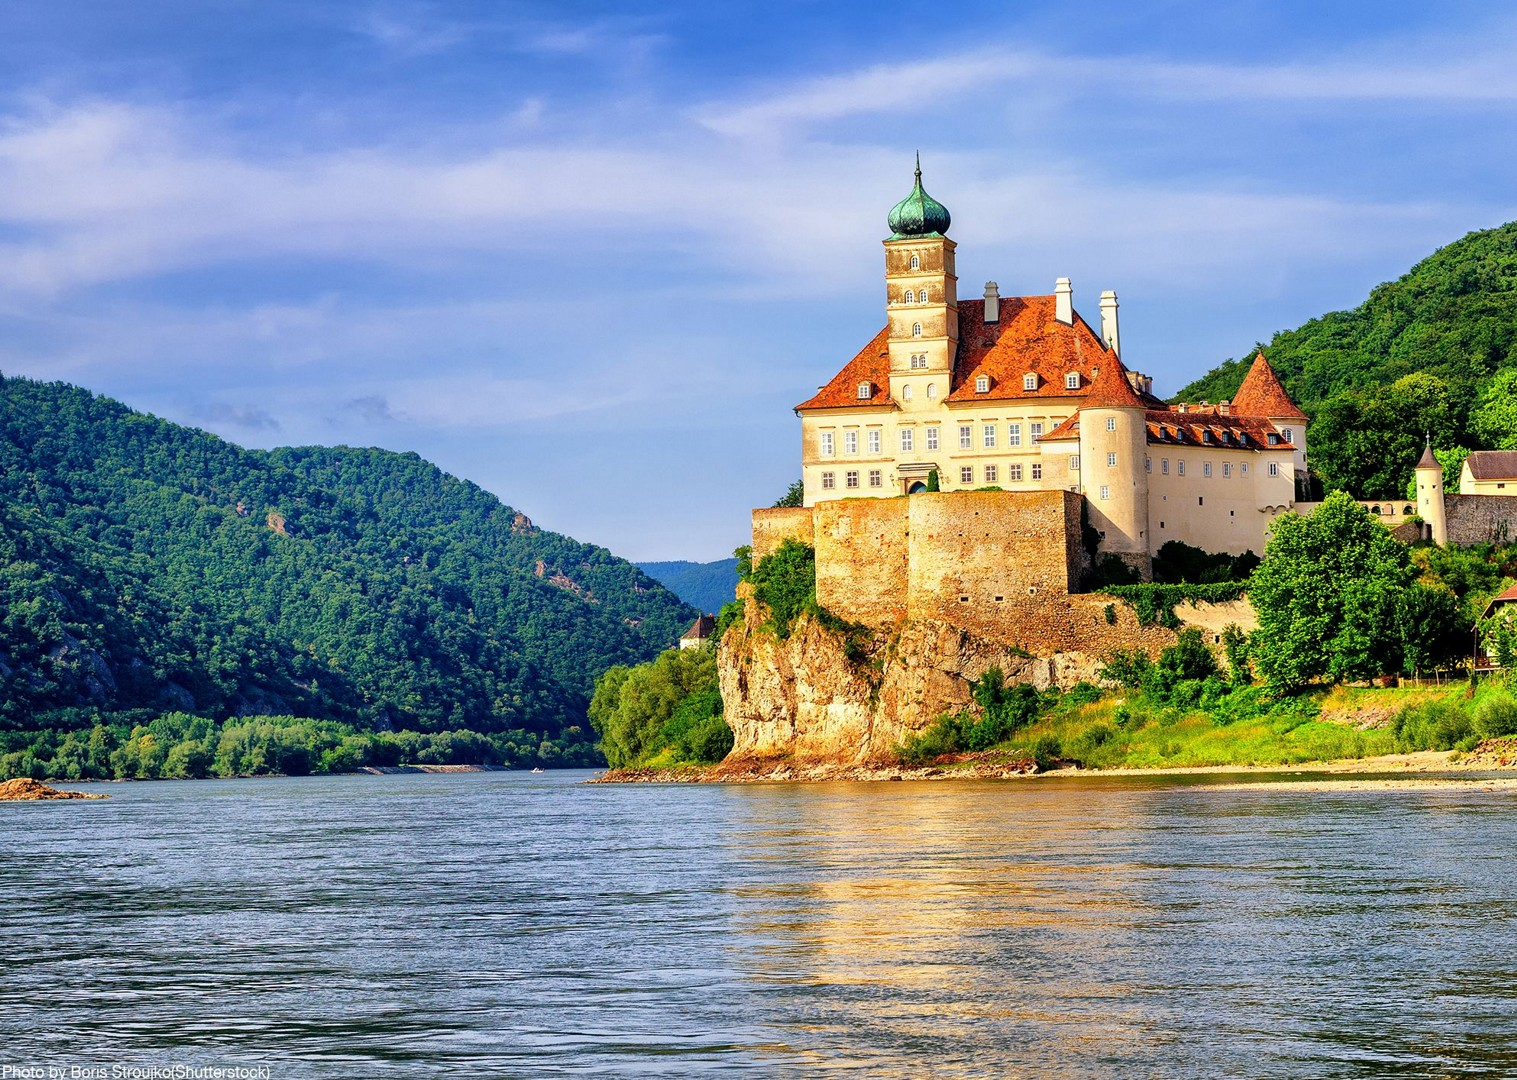 schonbuehel-castle-danube-cycle-path-austria-tour-saddle-skedaddle.jpg - Germany and Austria - The Danube Cyclepath (10 Days) - Self-Guided Leisure Cycling Holiday - Leisure Cycling